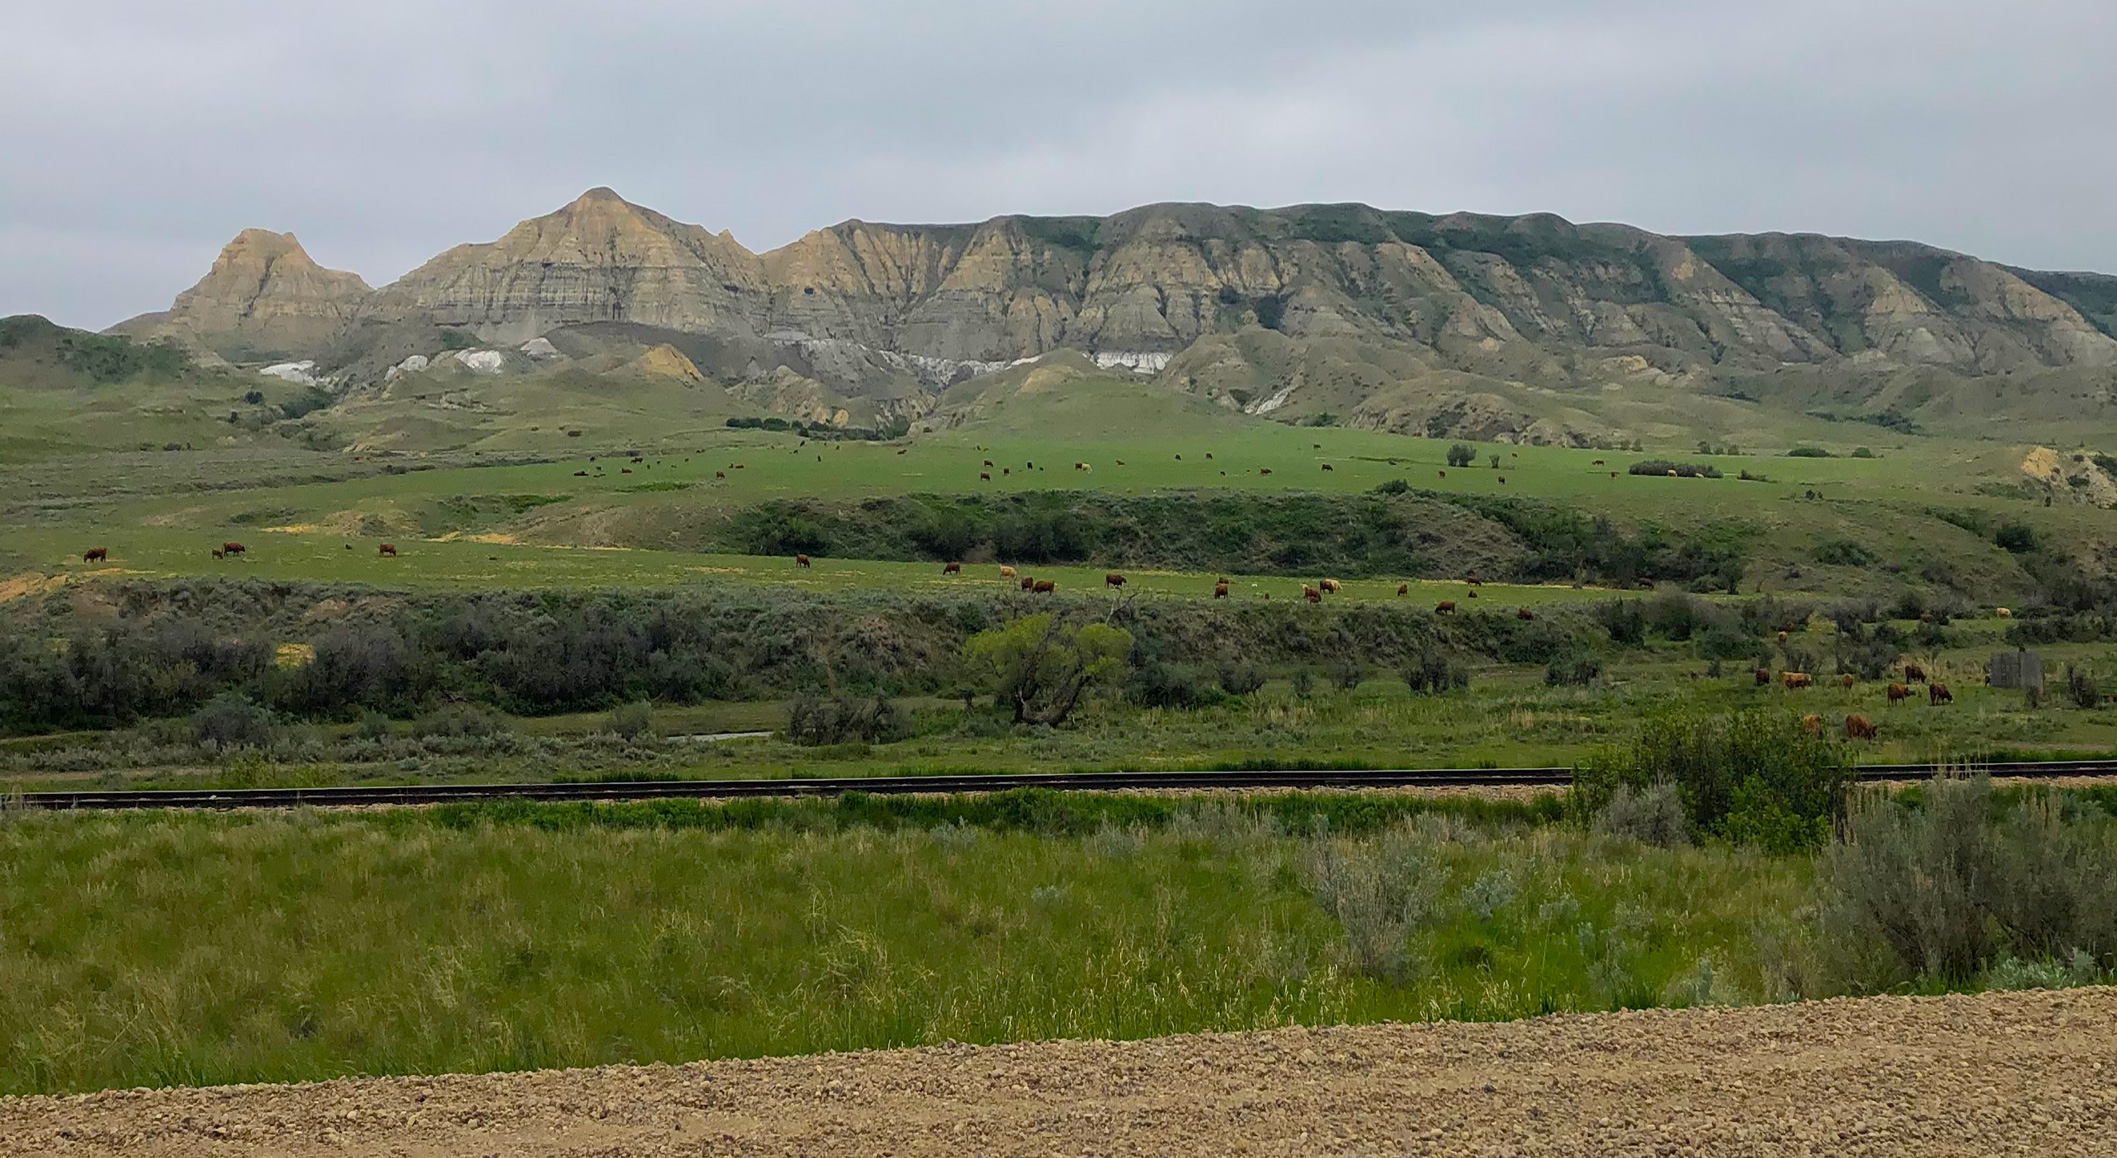 Outcrops of the Whitemud formation in the Eastend river valley - 2021